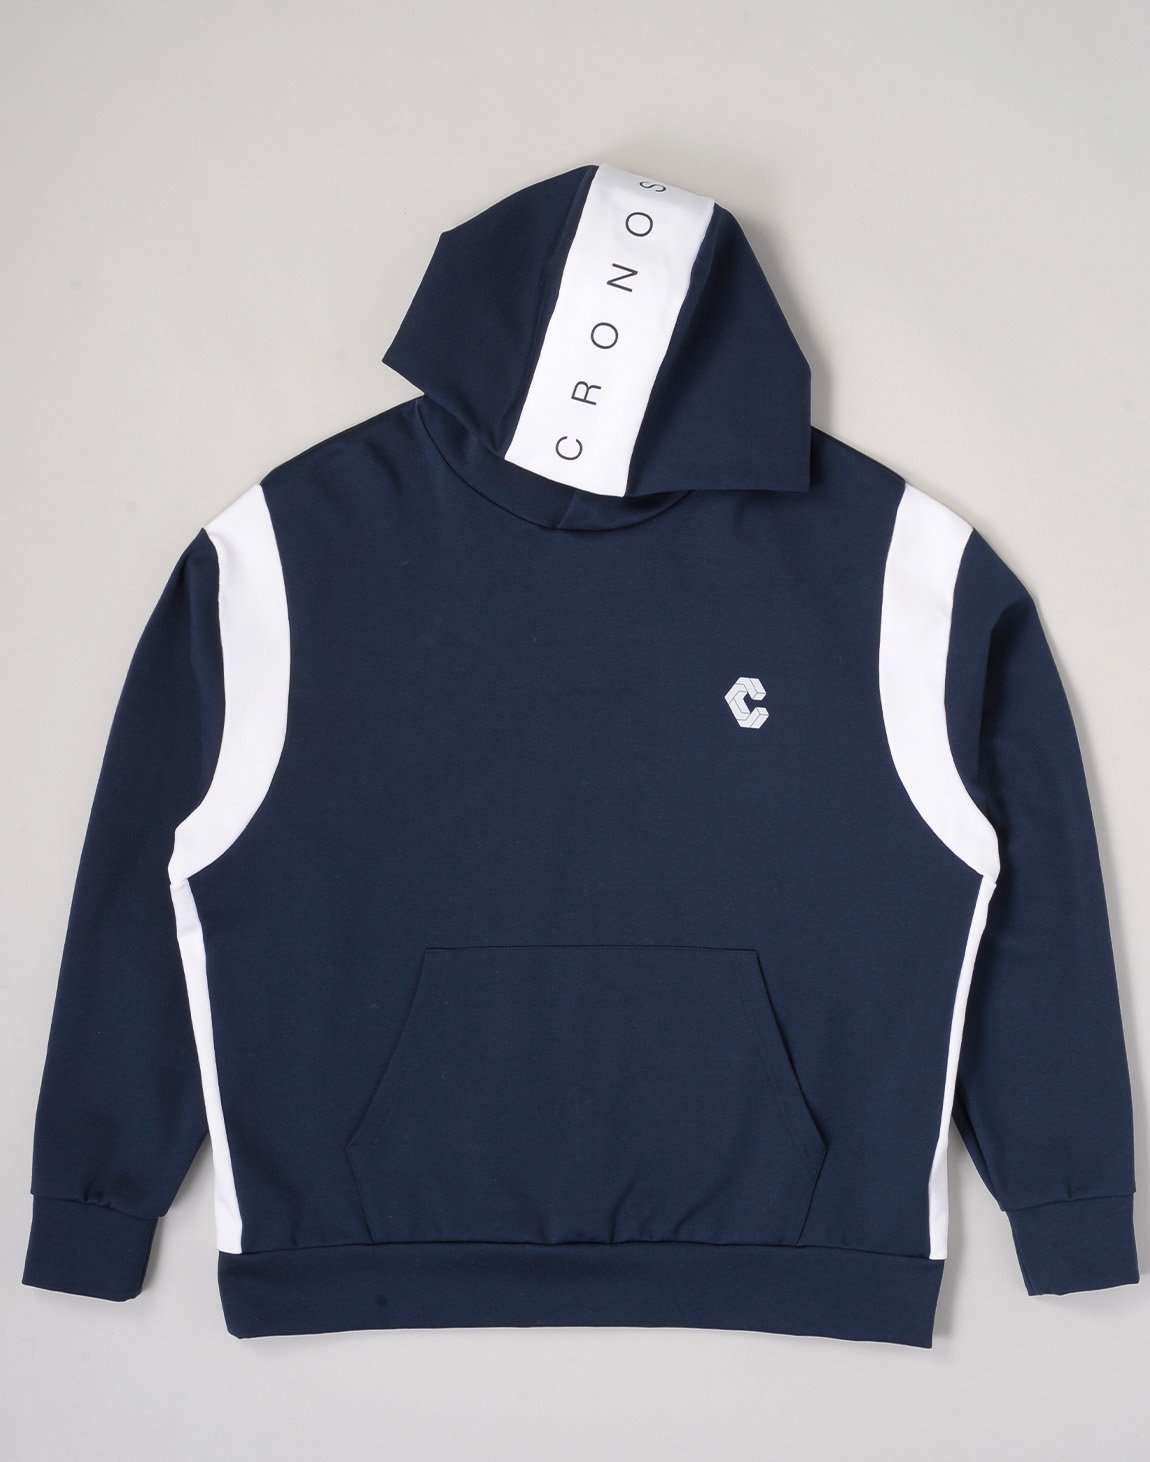 <img class='new_mark_img1' src='https://img.shop-pro.jp/img/new/icons1.gif' style='border:none;display:inline;margin:0px;padding:0px;width:auto;' />CRONOS HEAD LOGO HOODIE【NAVY×WHITE】